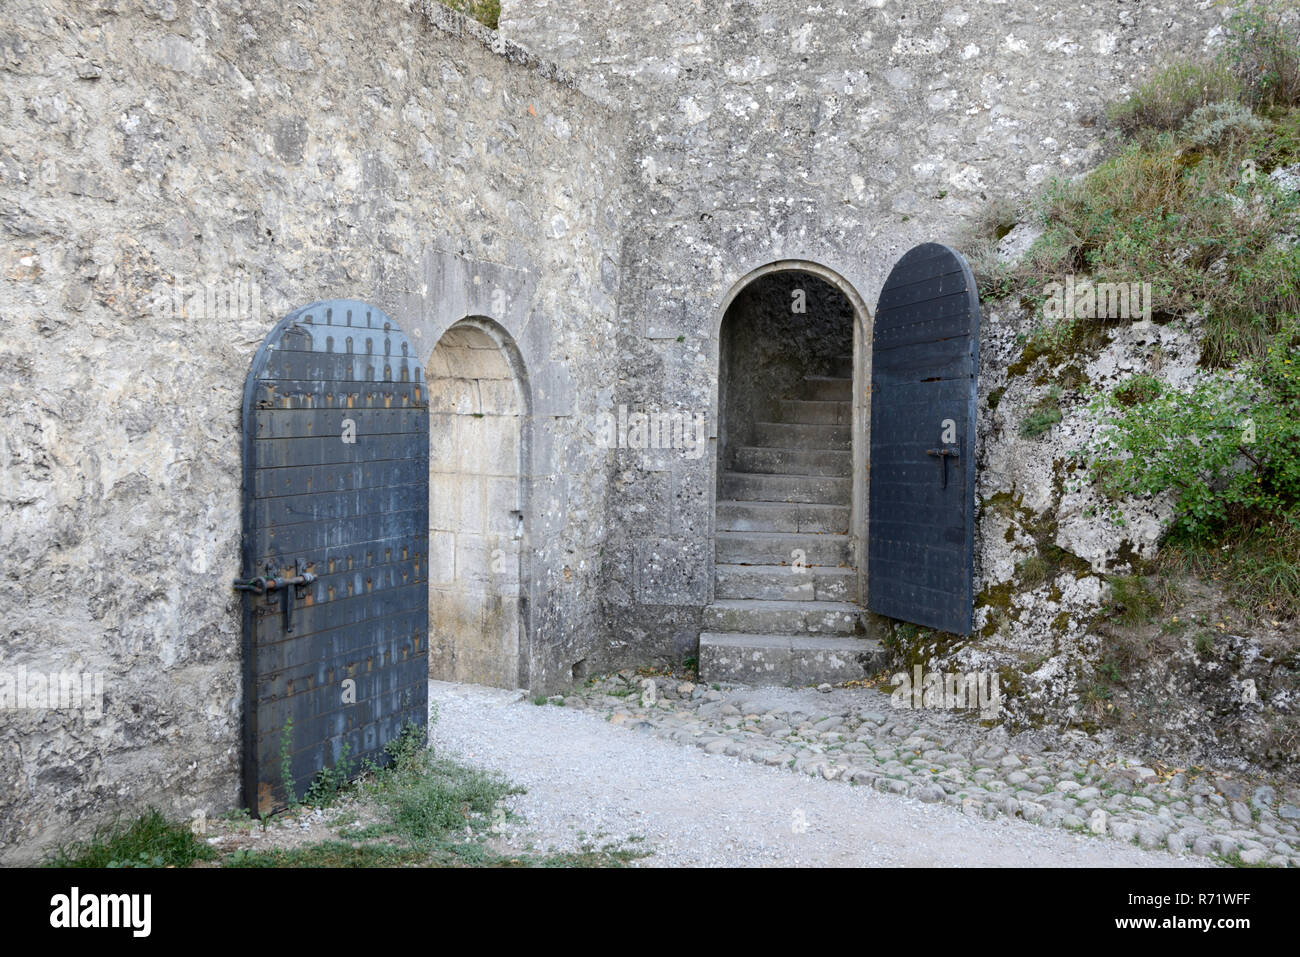 Metal Security Doors, Arched Doorways & Cobbled Path in the Medieval Citadel, Castle or Fortress Sisteron Alpes-de-Haute-Provence Provence France - Stock Image